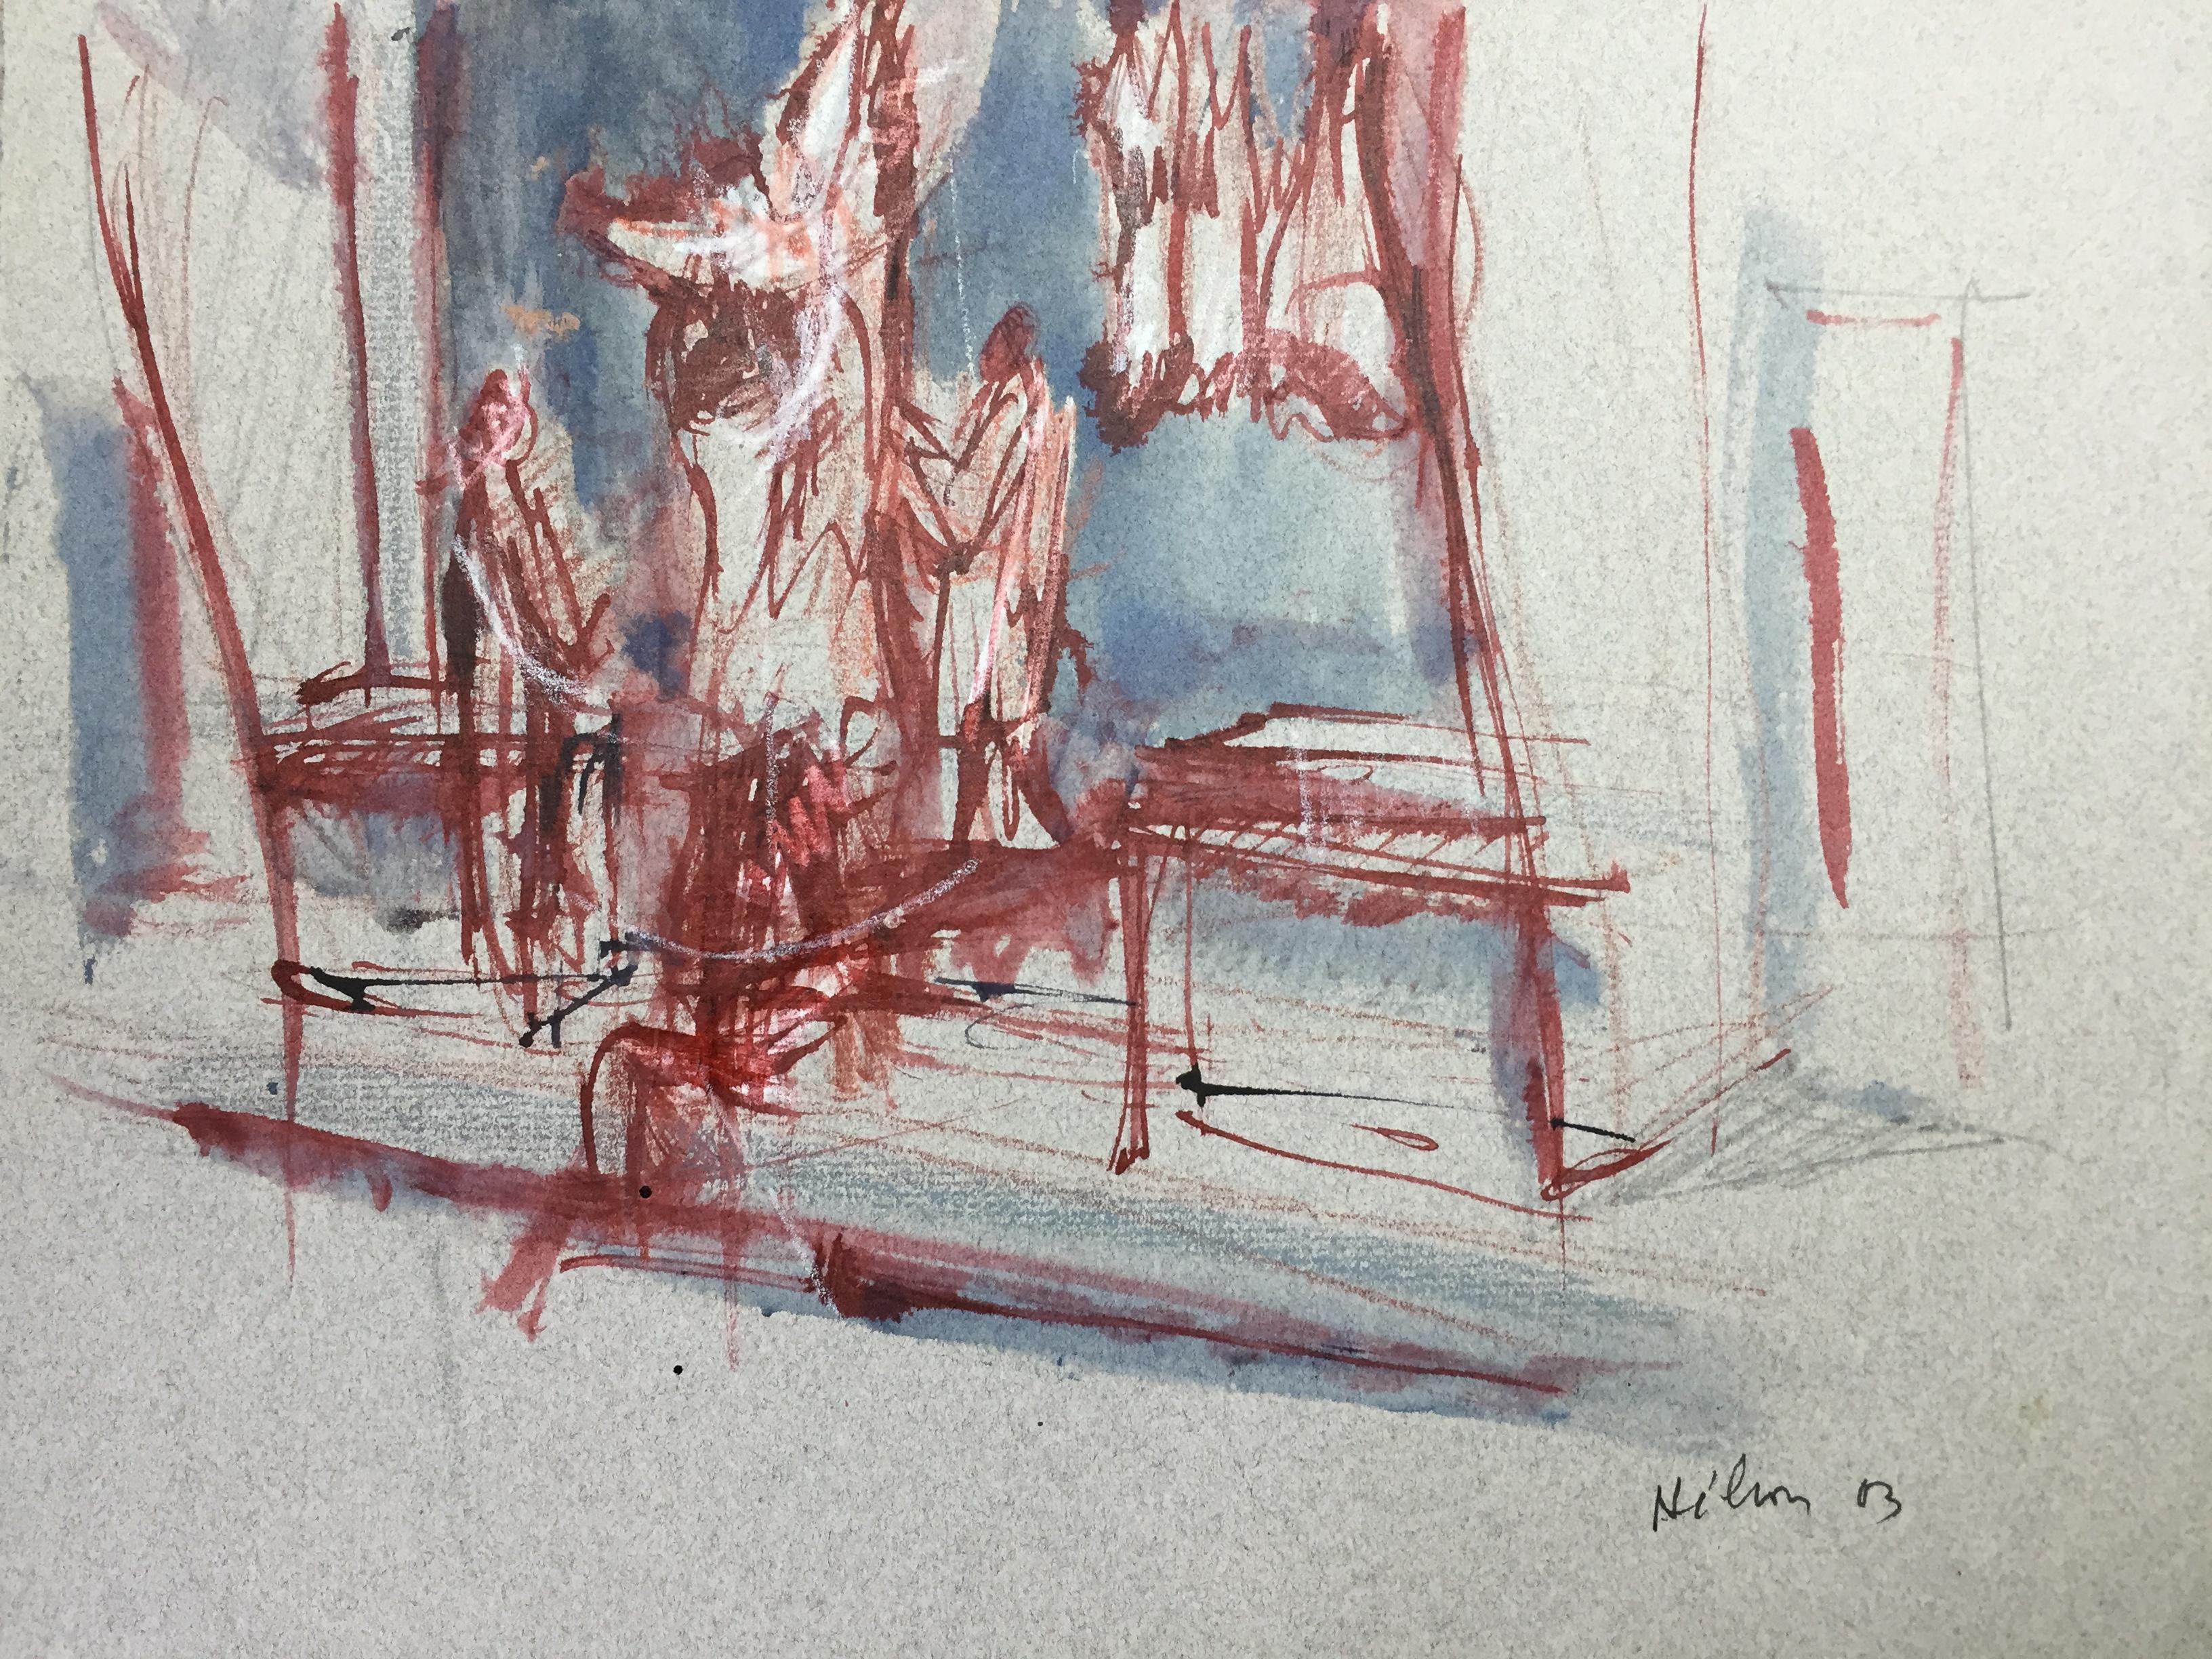 French Modern Drawing by Jean Hélion - Les Bouchers